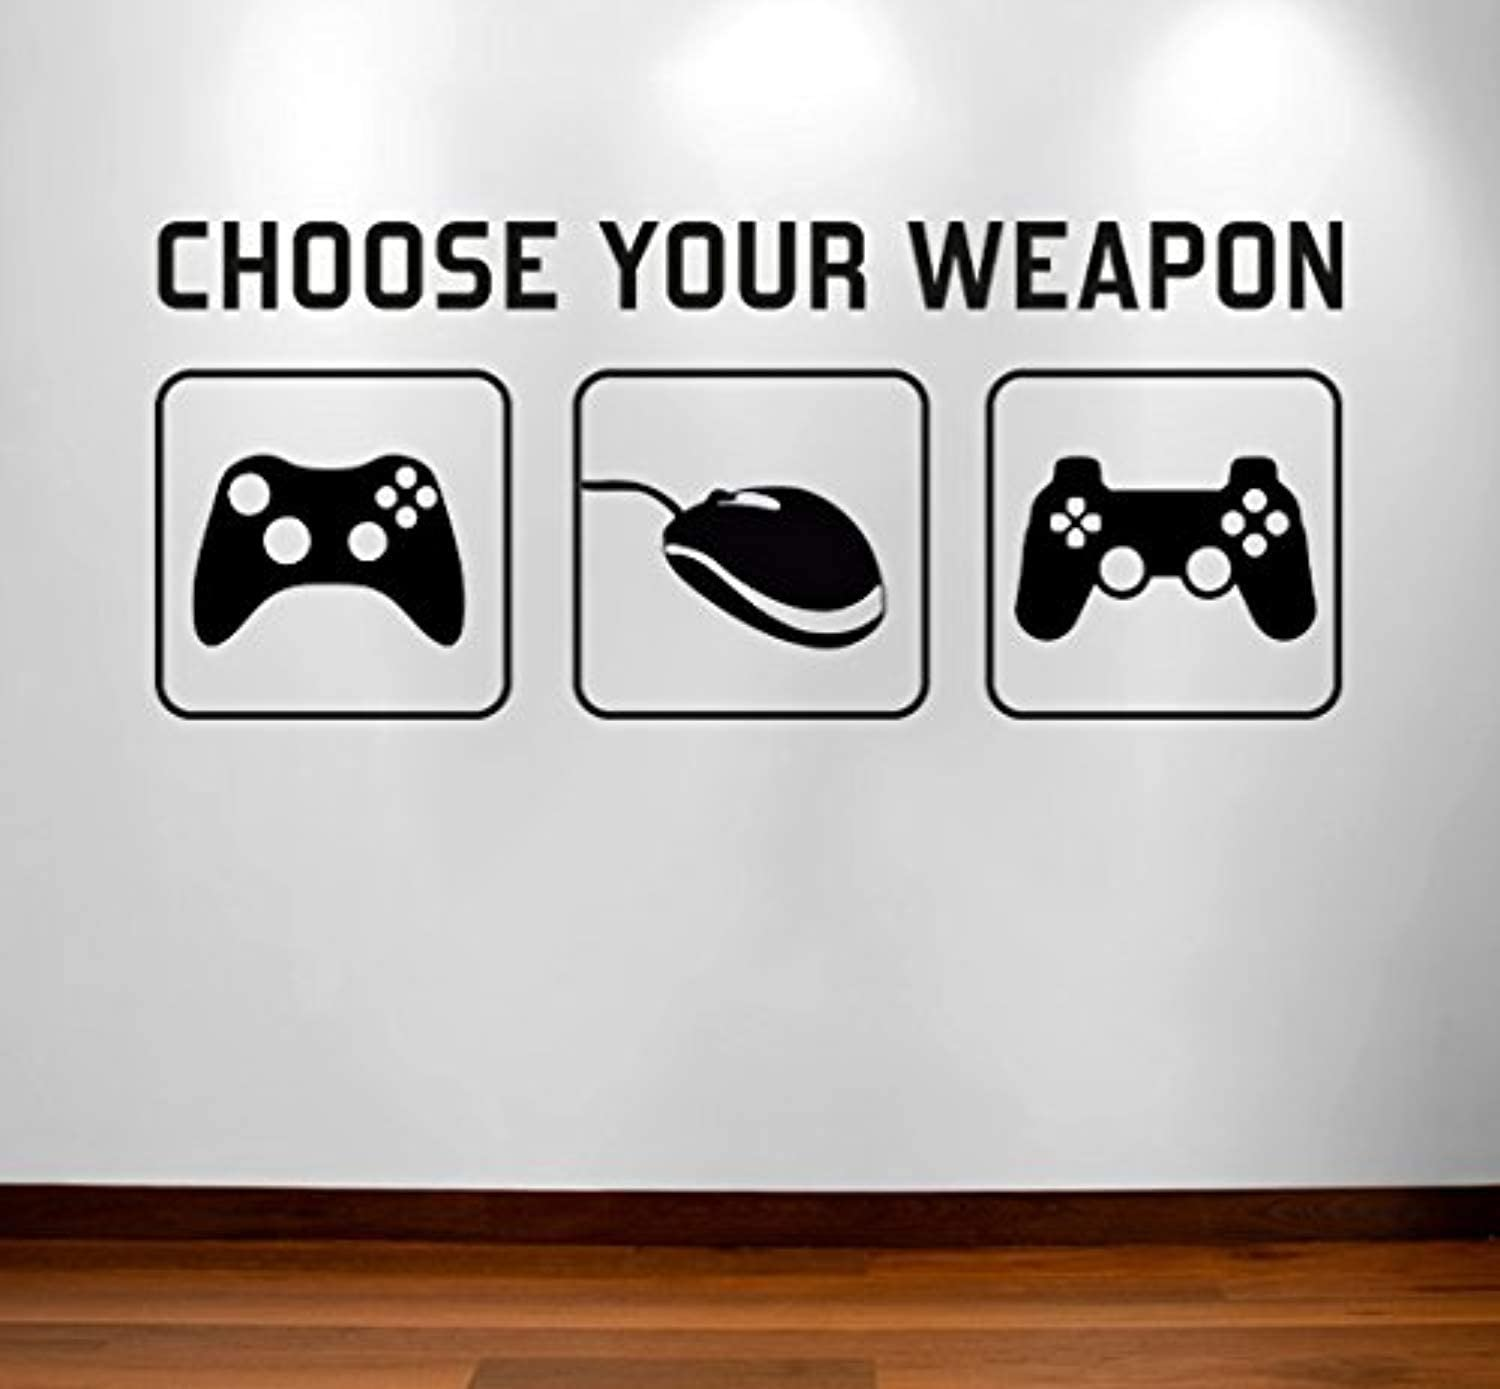 Amazon Com Vinyl Wall Decals Home Decor Choose Your Weapon Video Game Gaming Mural Kids Children Boys Teenager Teens Bedroom Man Cave Room Art Ideas Canvas Sticker